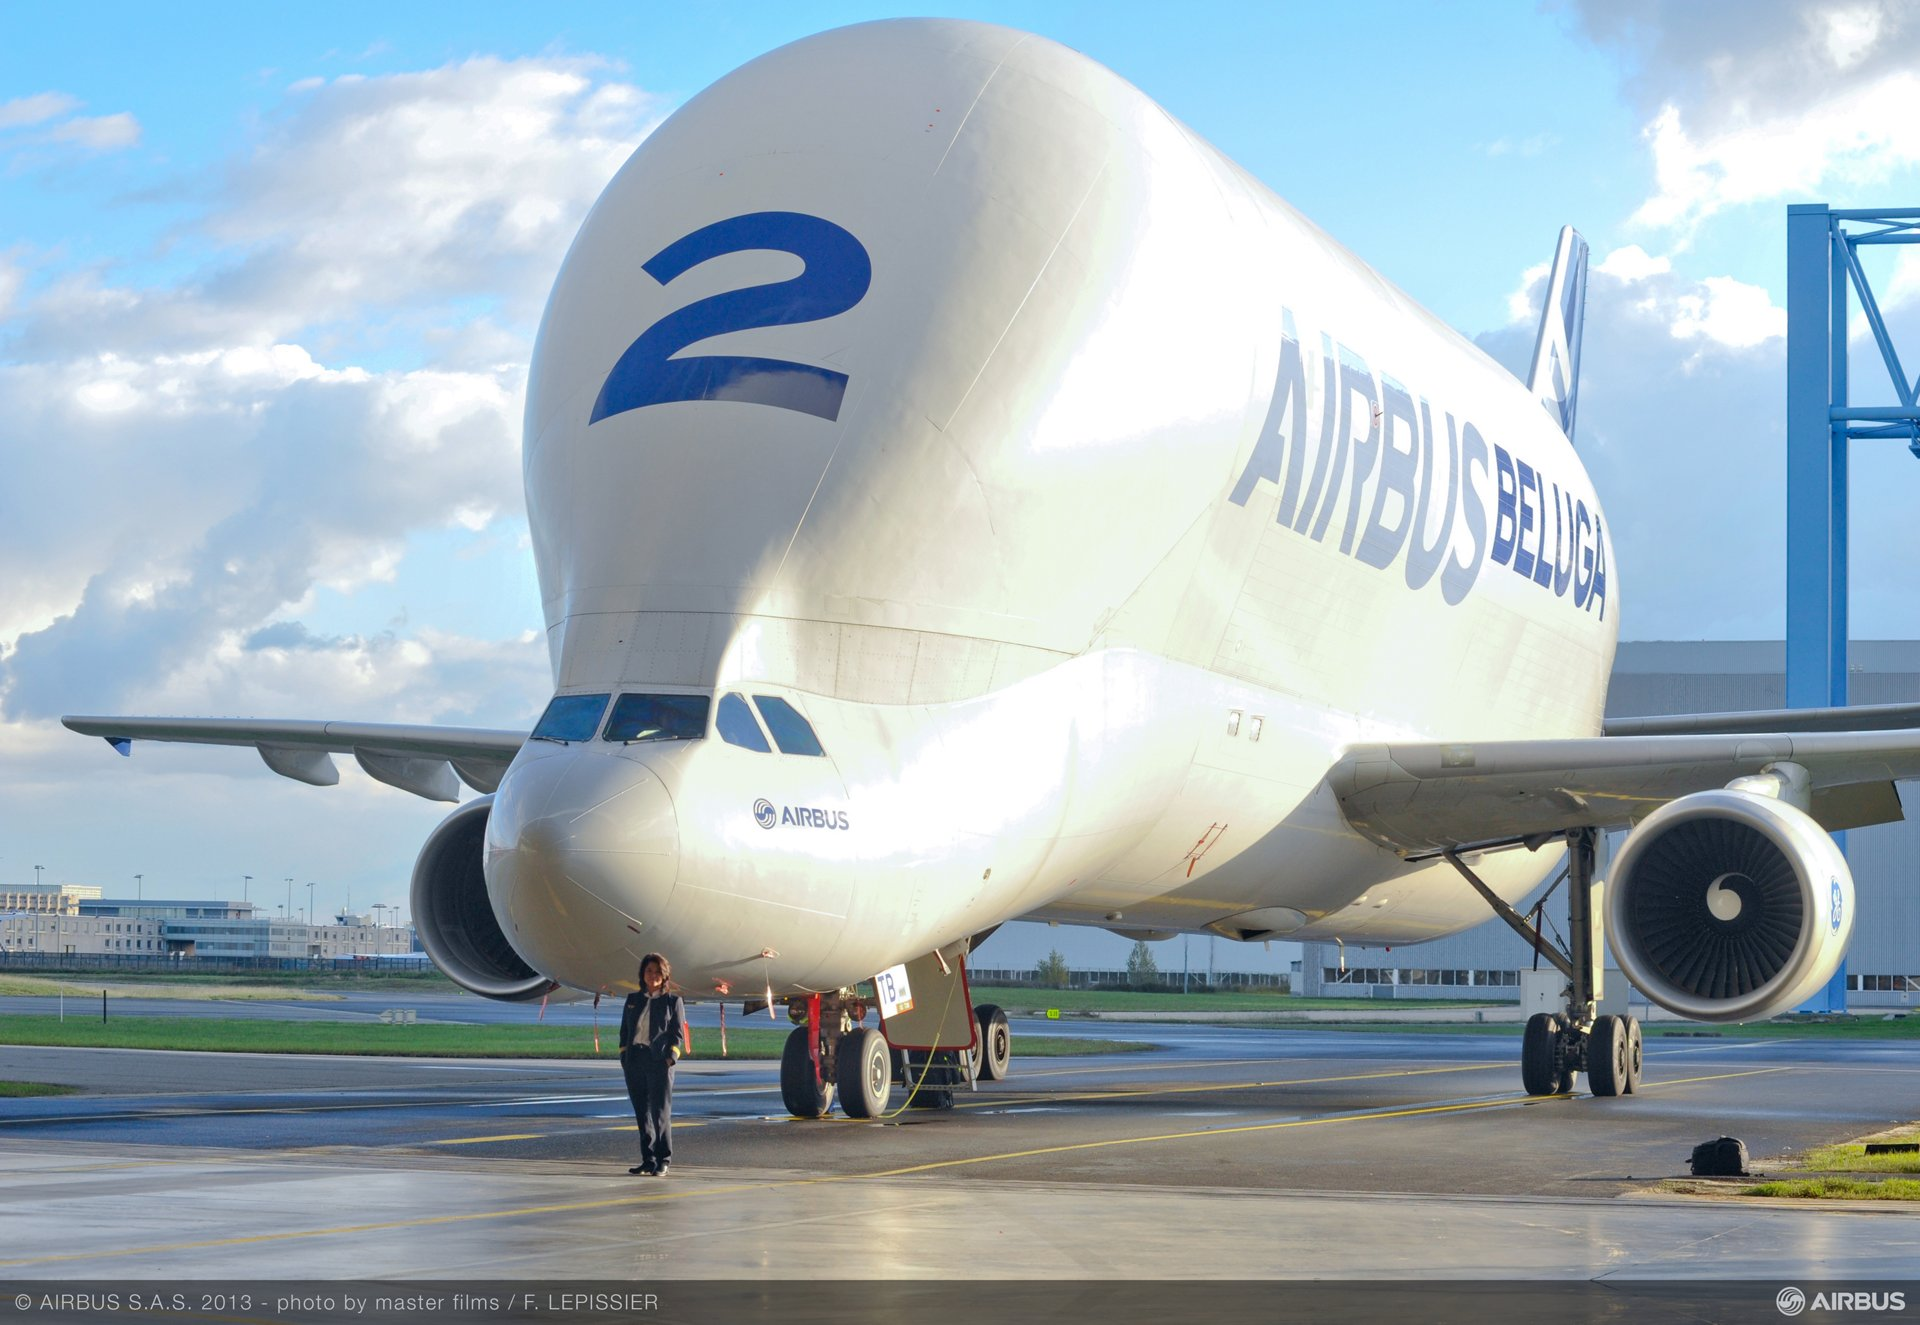 Airbus Beluga – No. 2 aircraft on ground